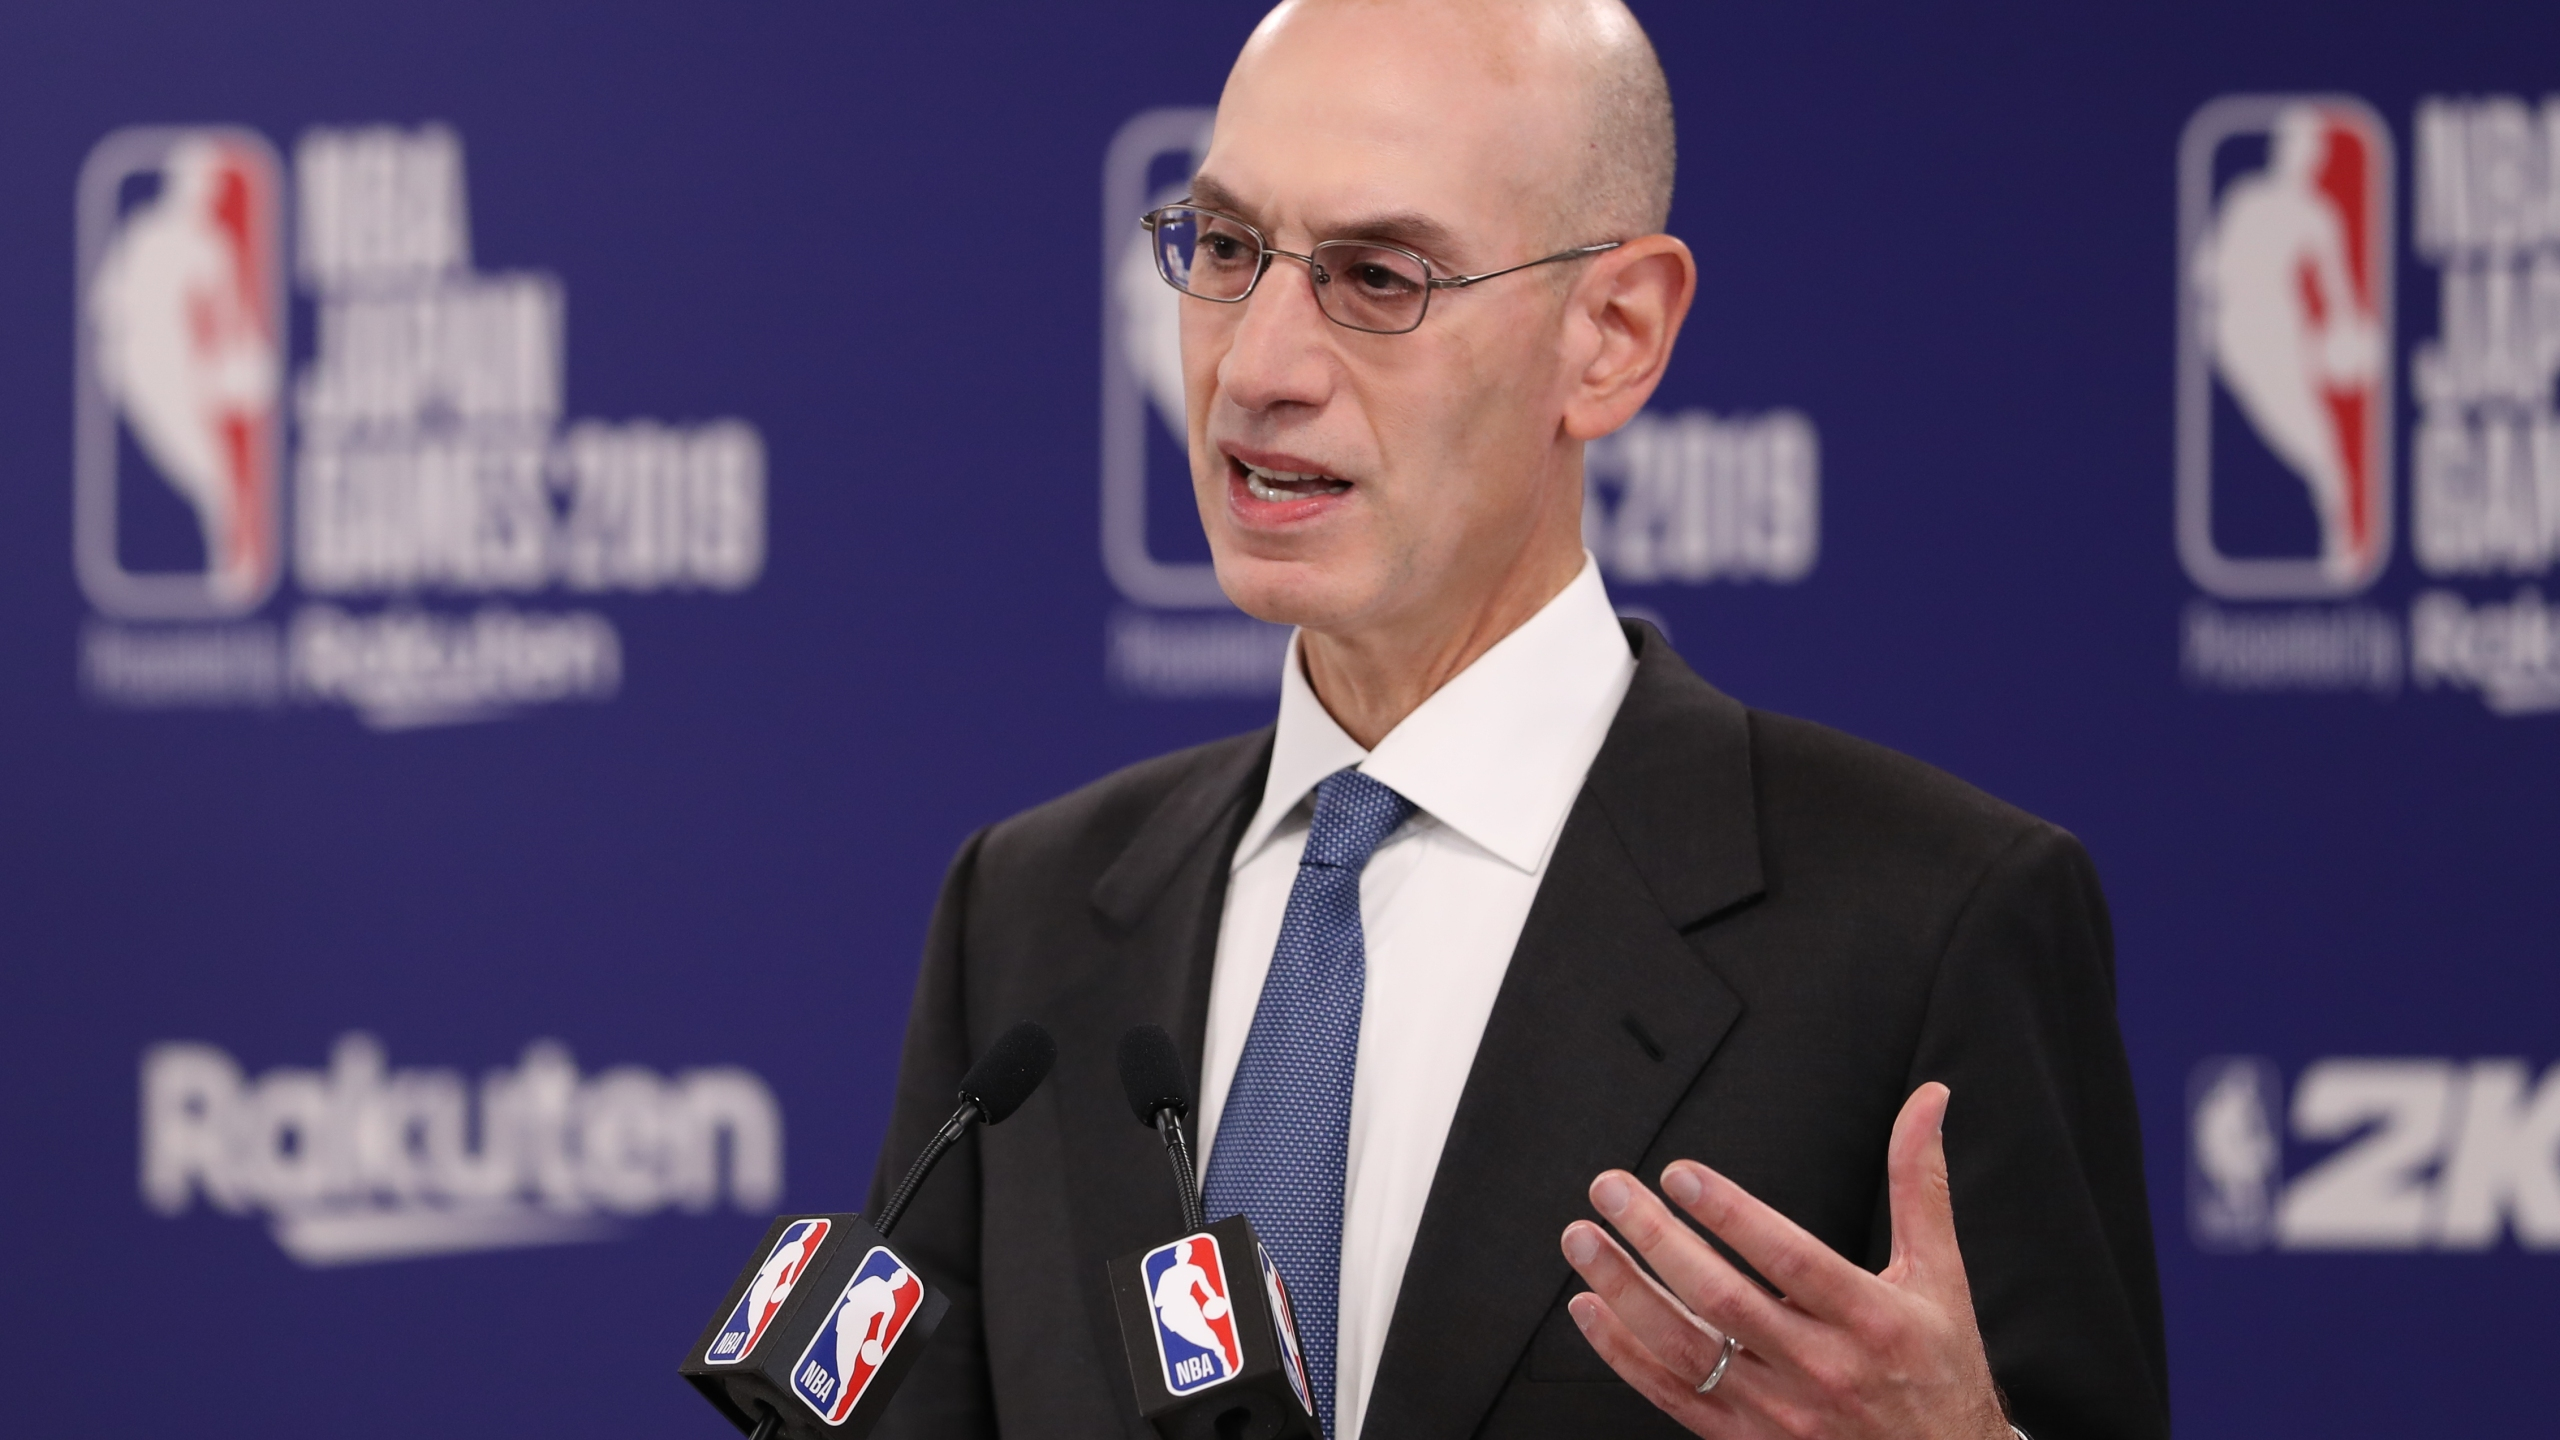 Commissioner of the National Basketball Association (NBA) Adam Silver speaks during a press conference prior to the preseason game between Houston Rockets and Toronto Raptors at Saitama Super Arena on October 08, 2019 in Saitama, Japan. (Credit: Takashi Aoyama/Getty Images)